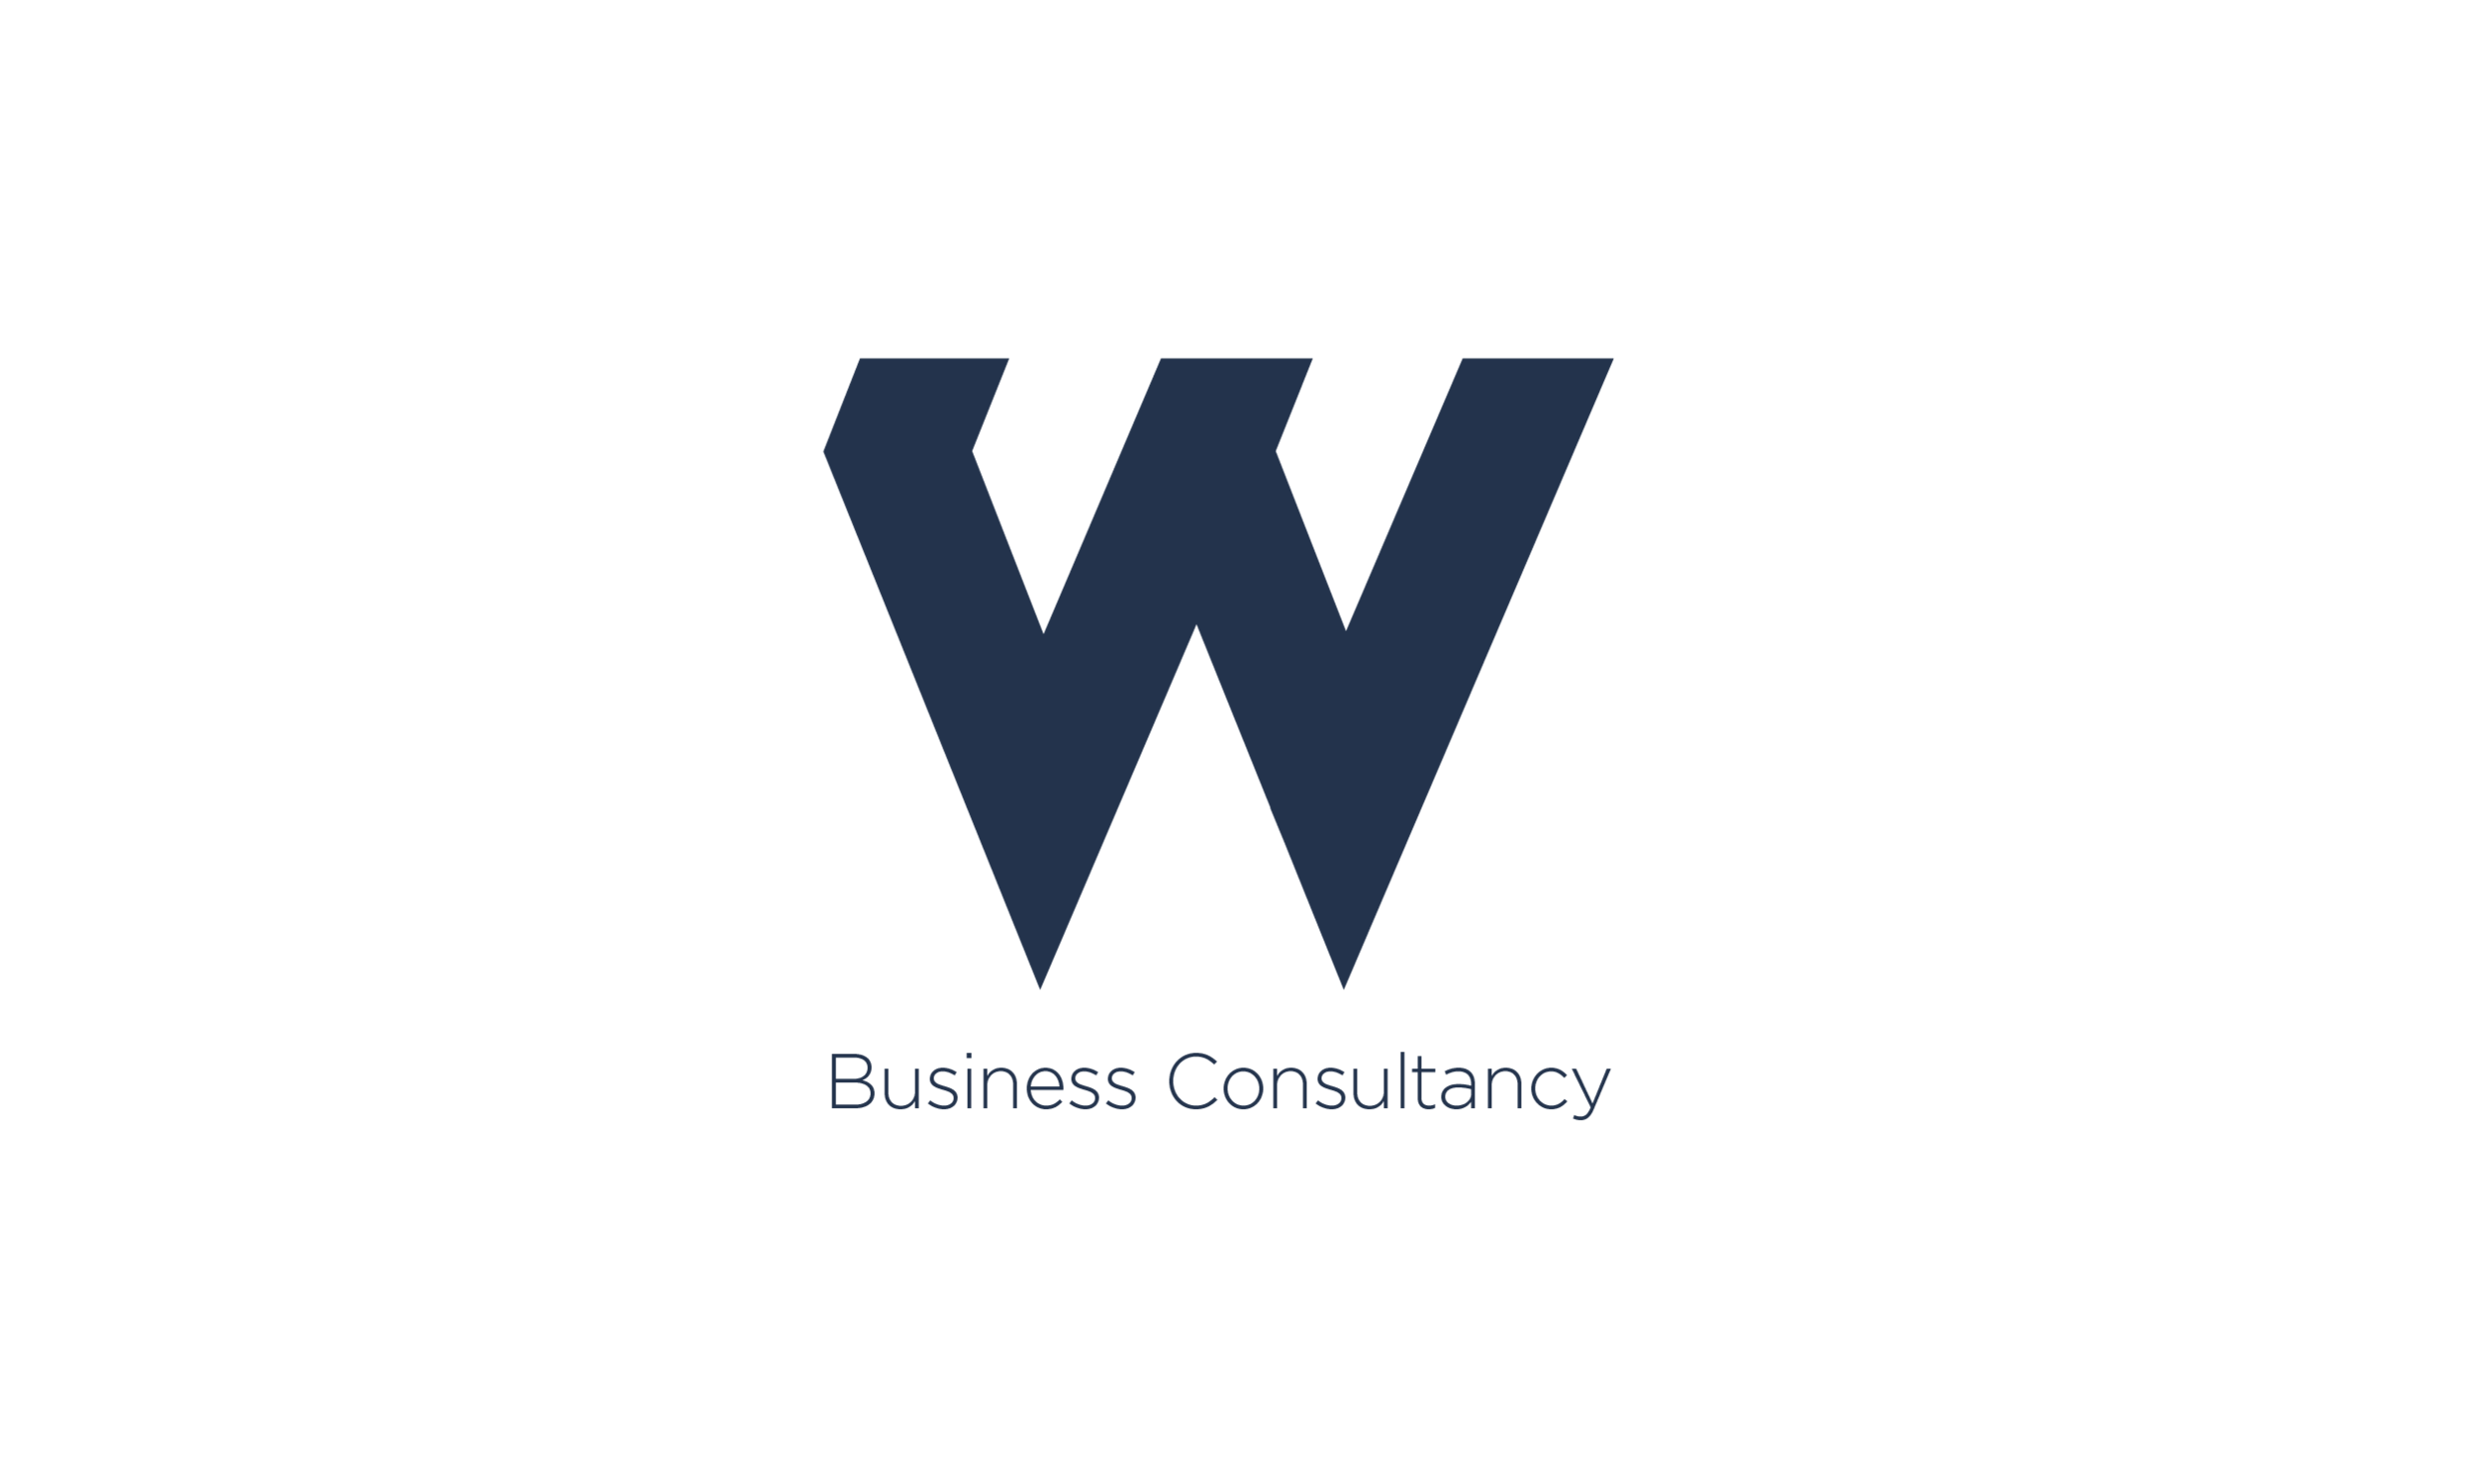 Westcourt-Business-Consultancy-Tunbridge-StudioArtboard 1 copy 2.png